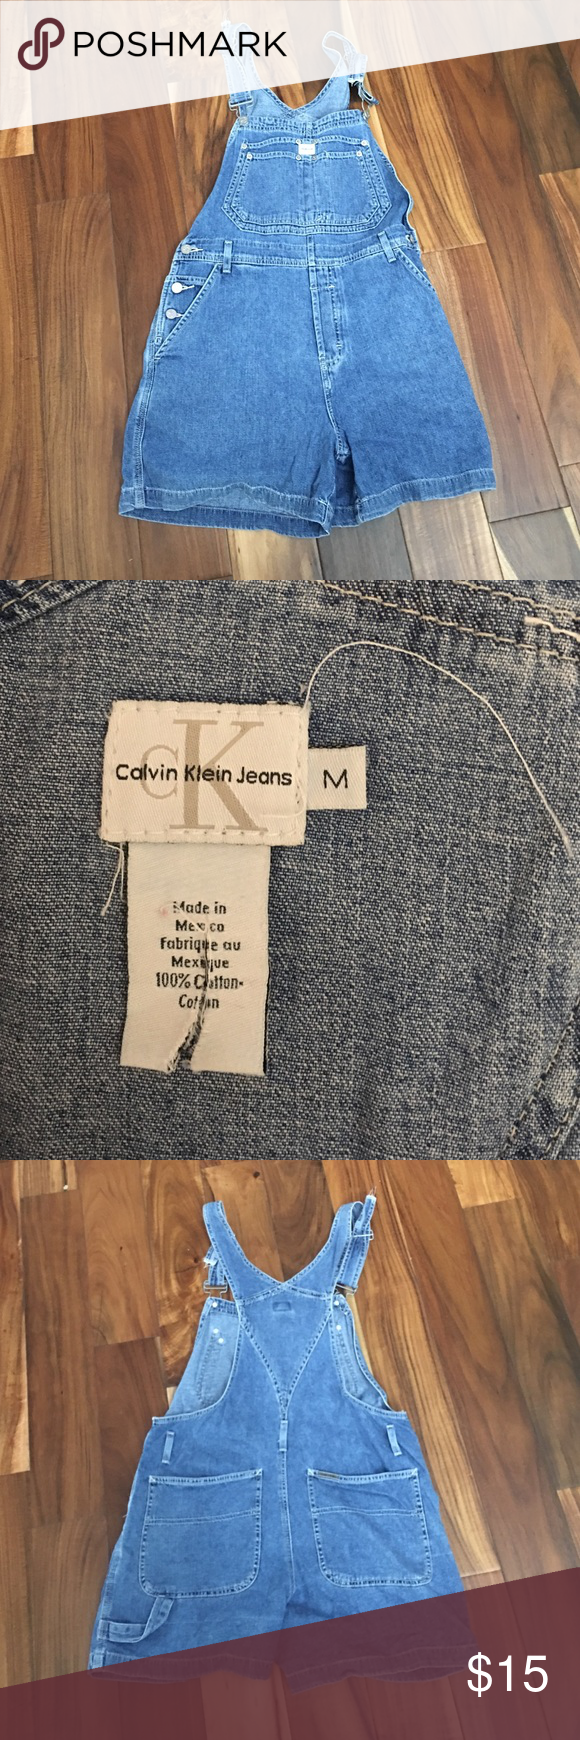 Calvin Klein jeans overalls Great condition worn 3 times Calvin Klein Jeans Jeans